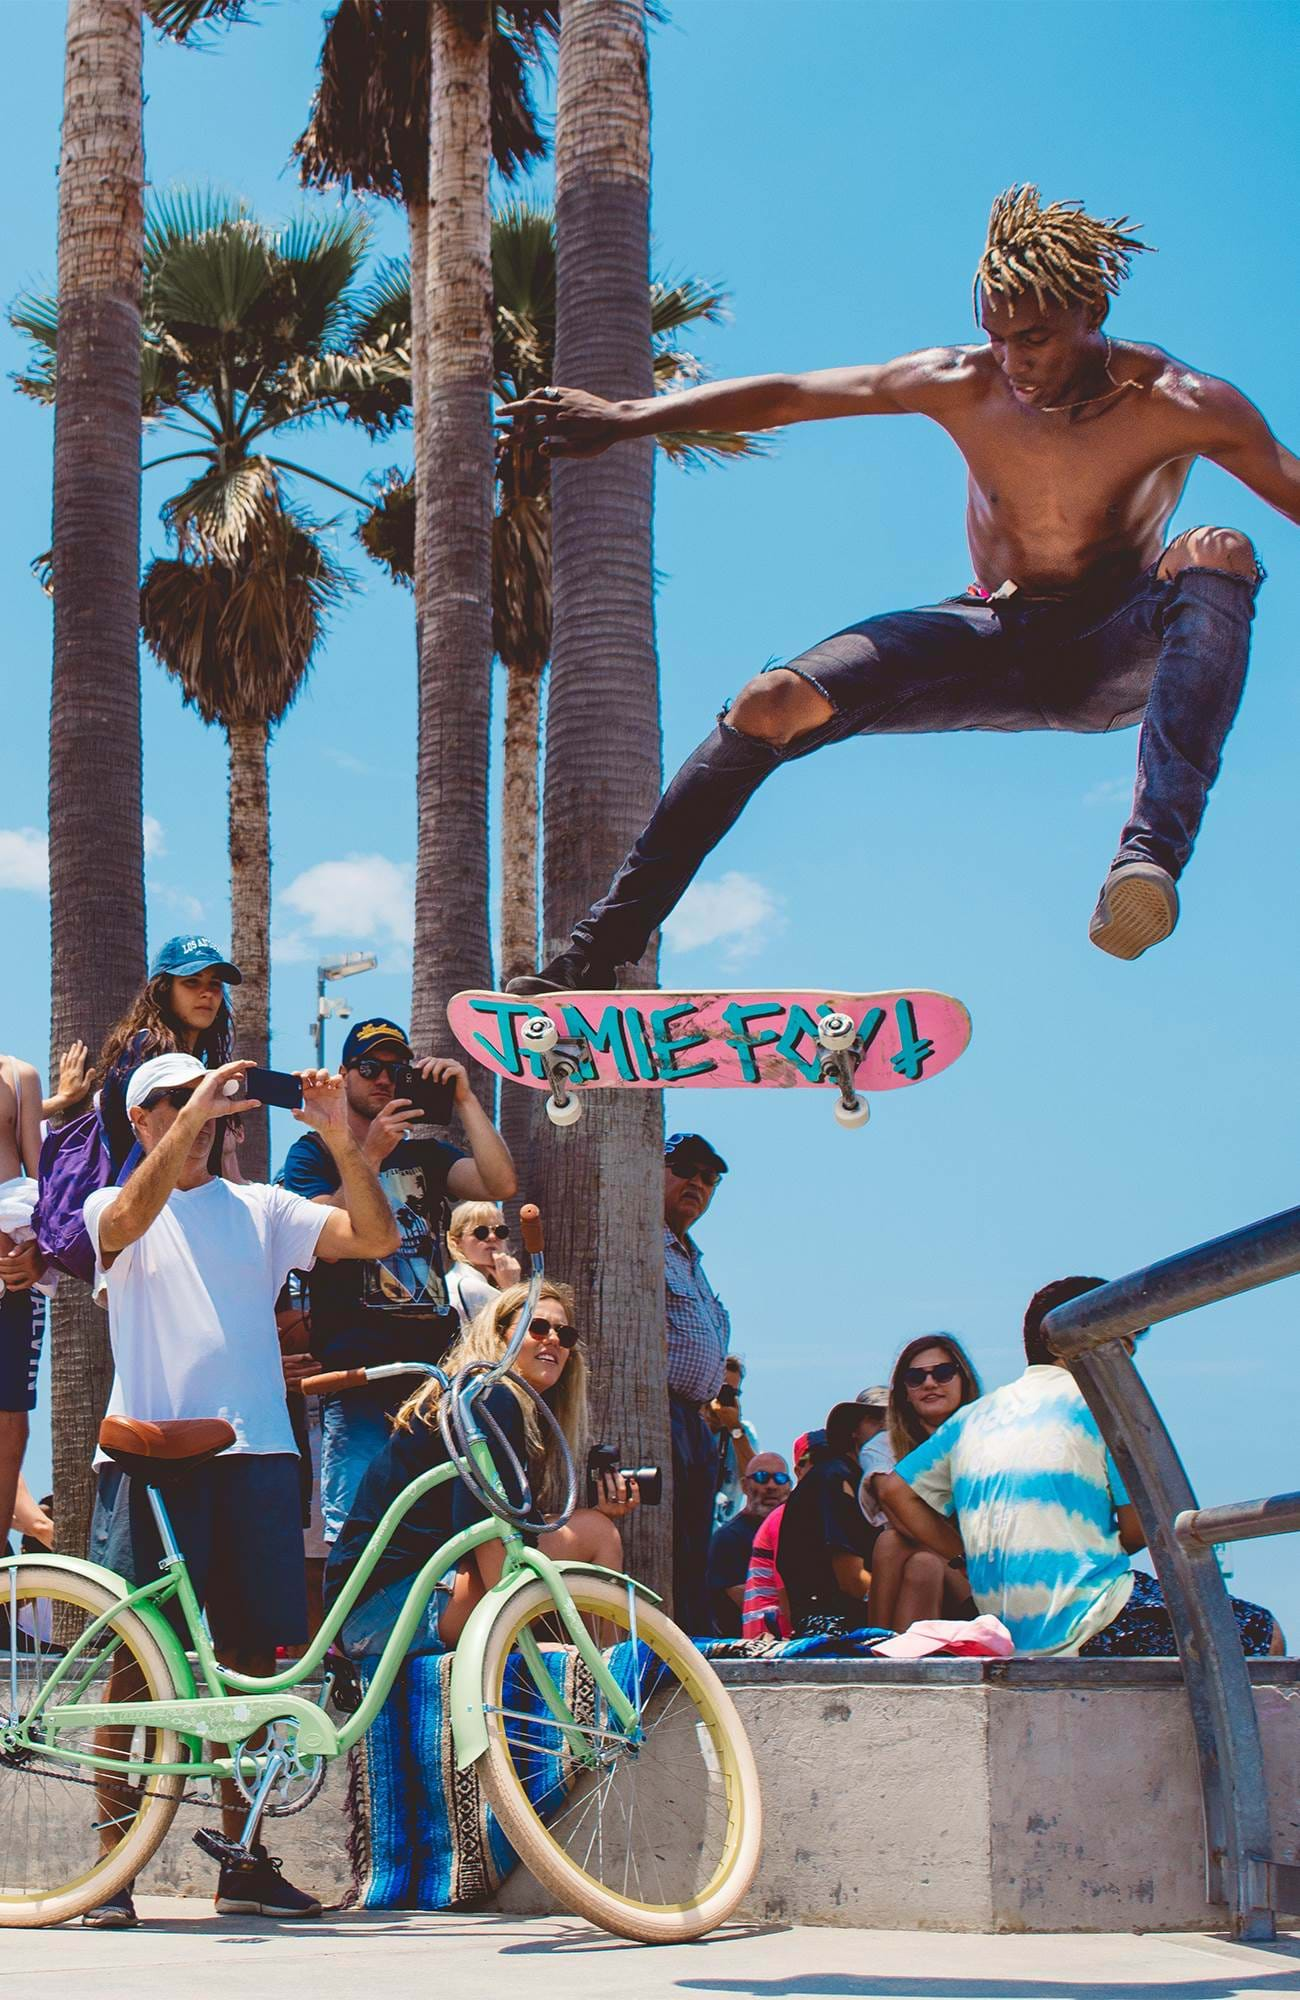 los-angeles-usa-california-beach-skateboard-sidebar